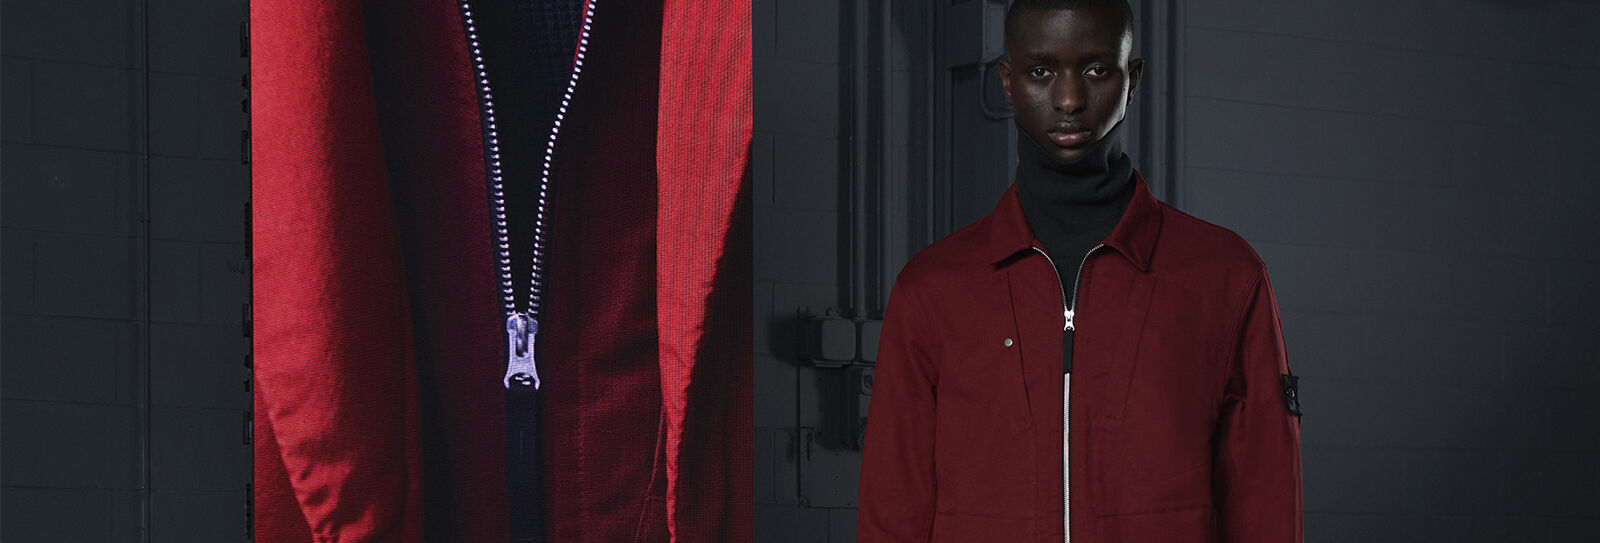 Model wearing a black turtleneck sweater under a dark red jacket beside an extreme close-up of the jacket zipper.